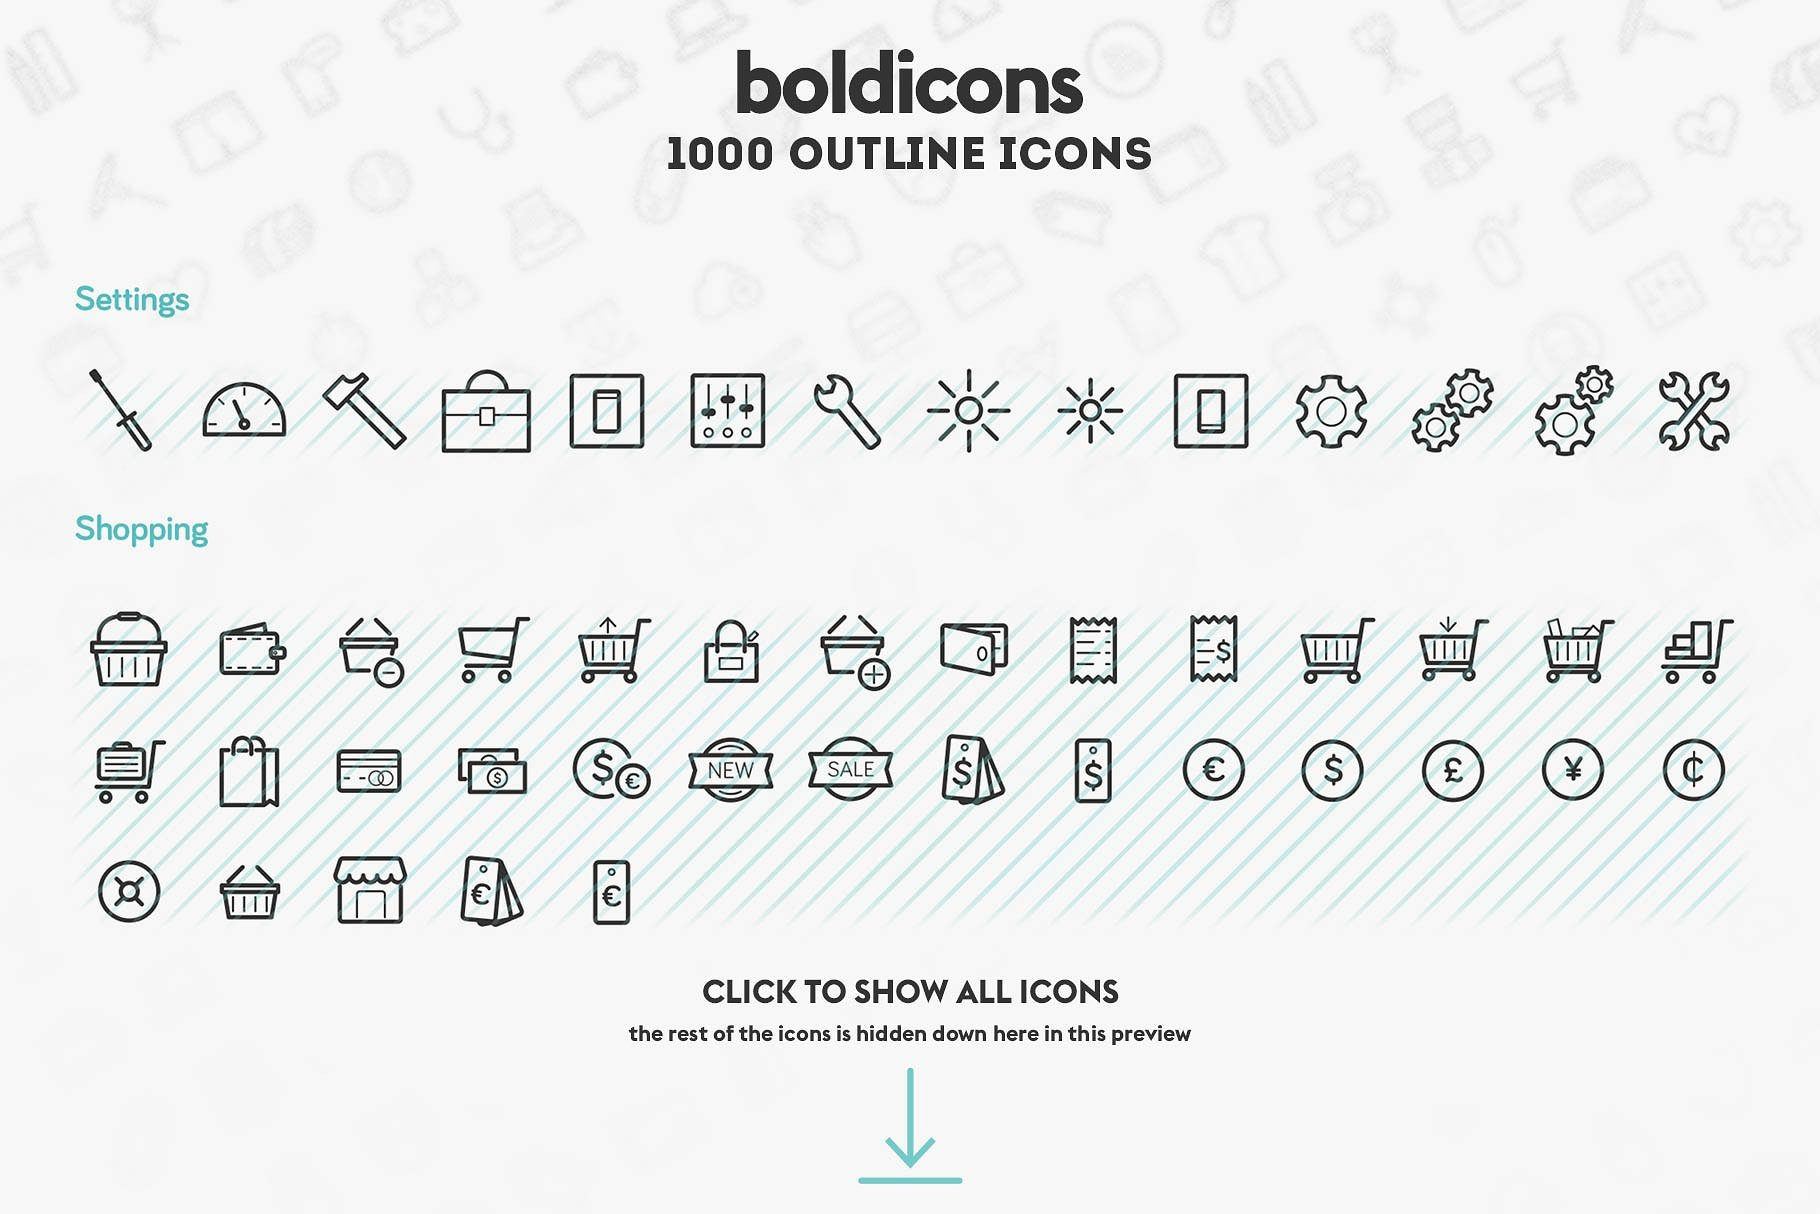 boldicons-features-.jpg